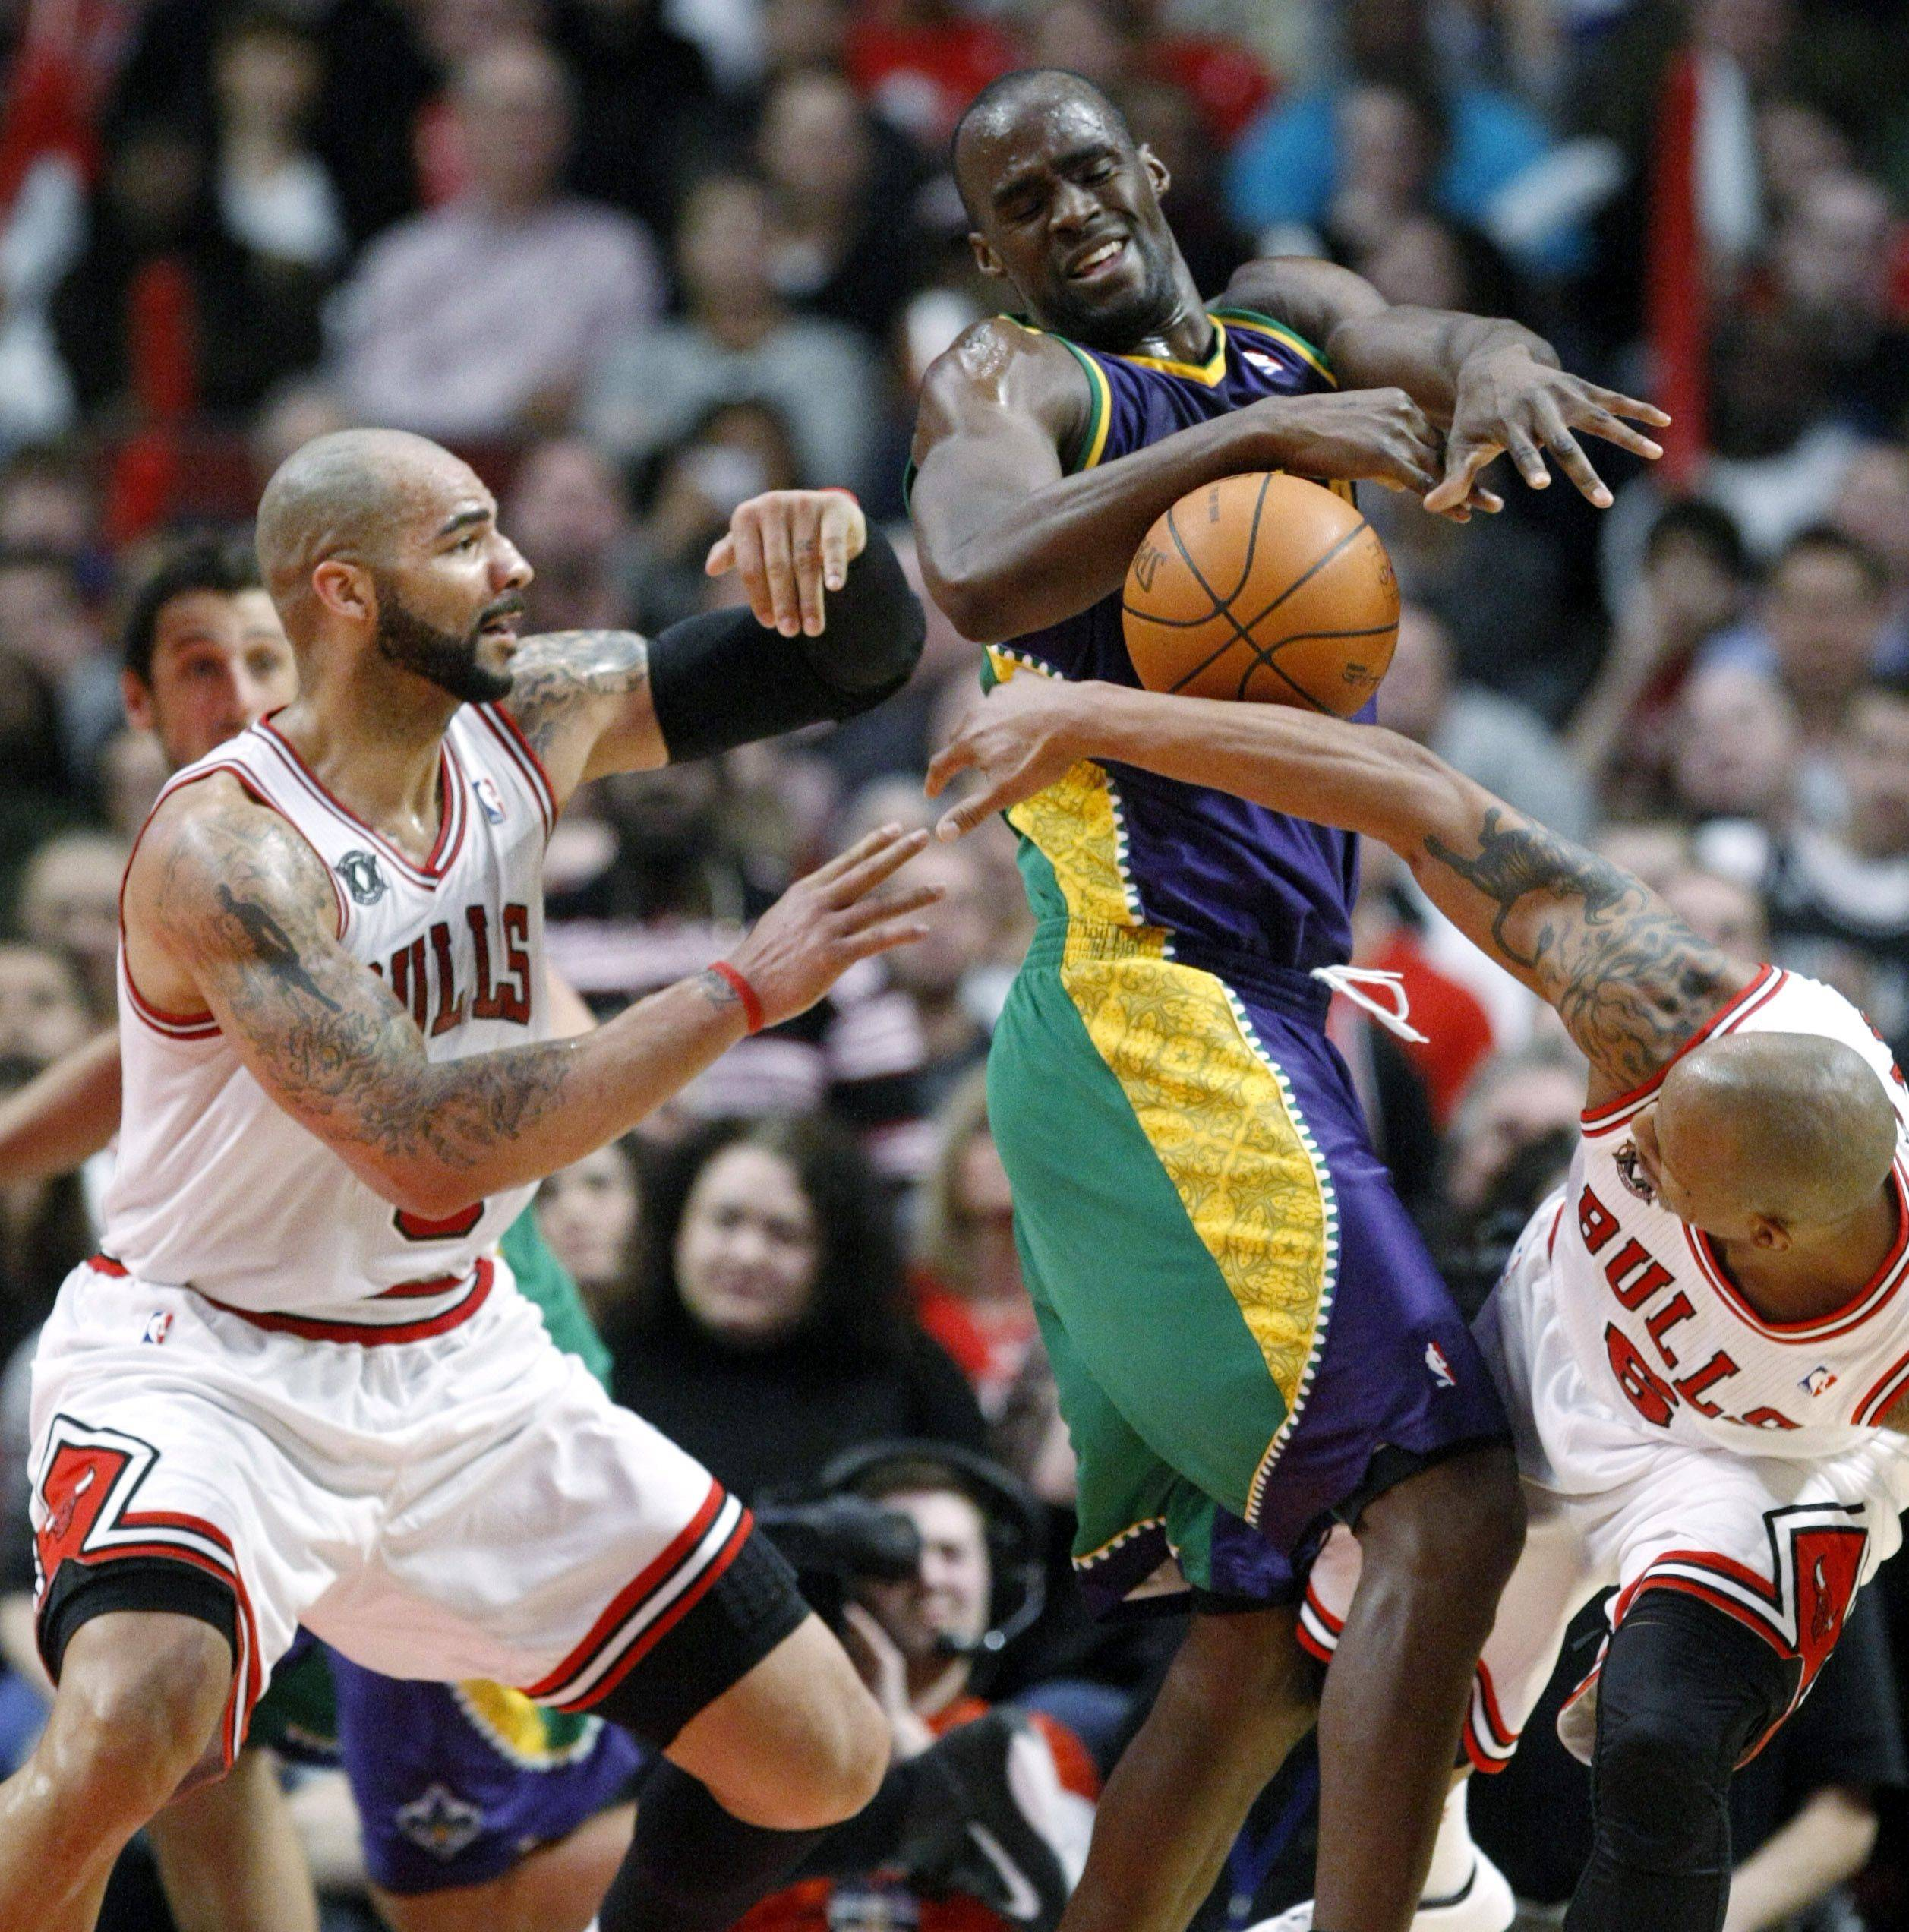 Hornets center Emeka Okafor has the ball stripped away by defensive pressure from Carlos Boozer, left, and Keith Bogans during Monday's Bulls victory.